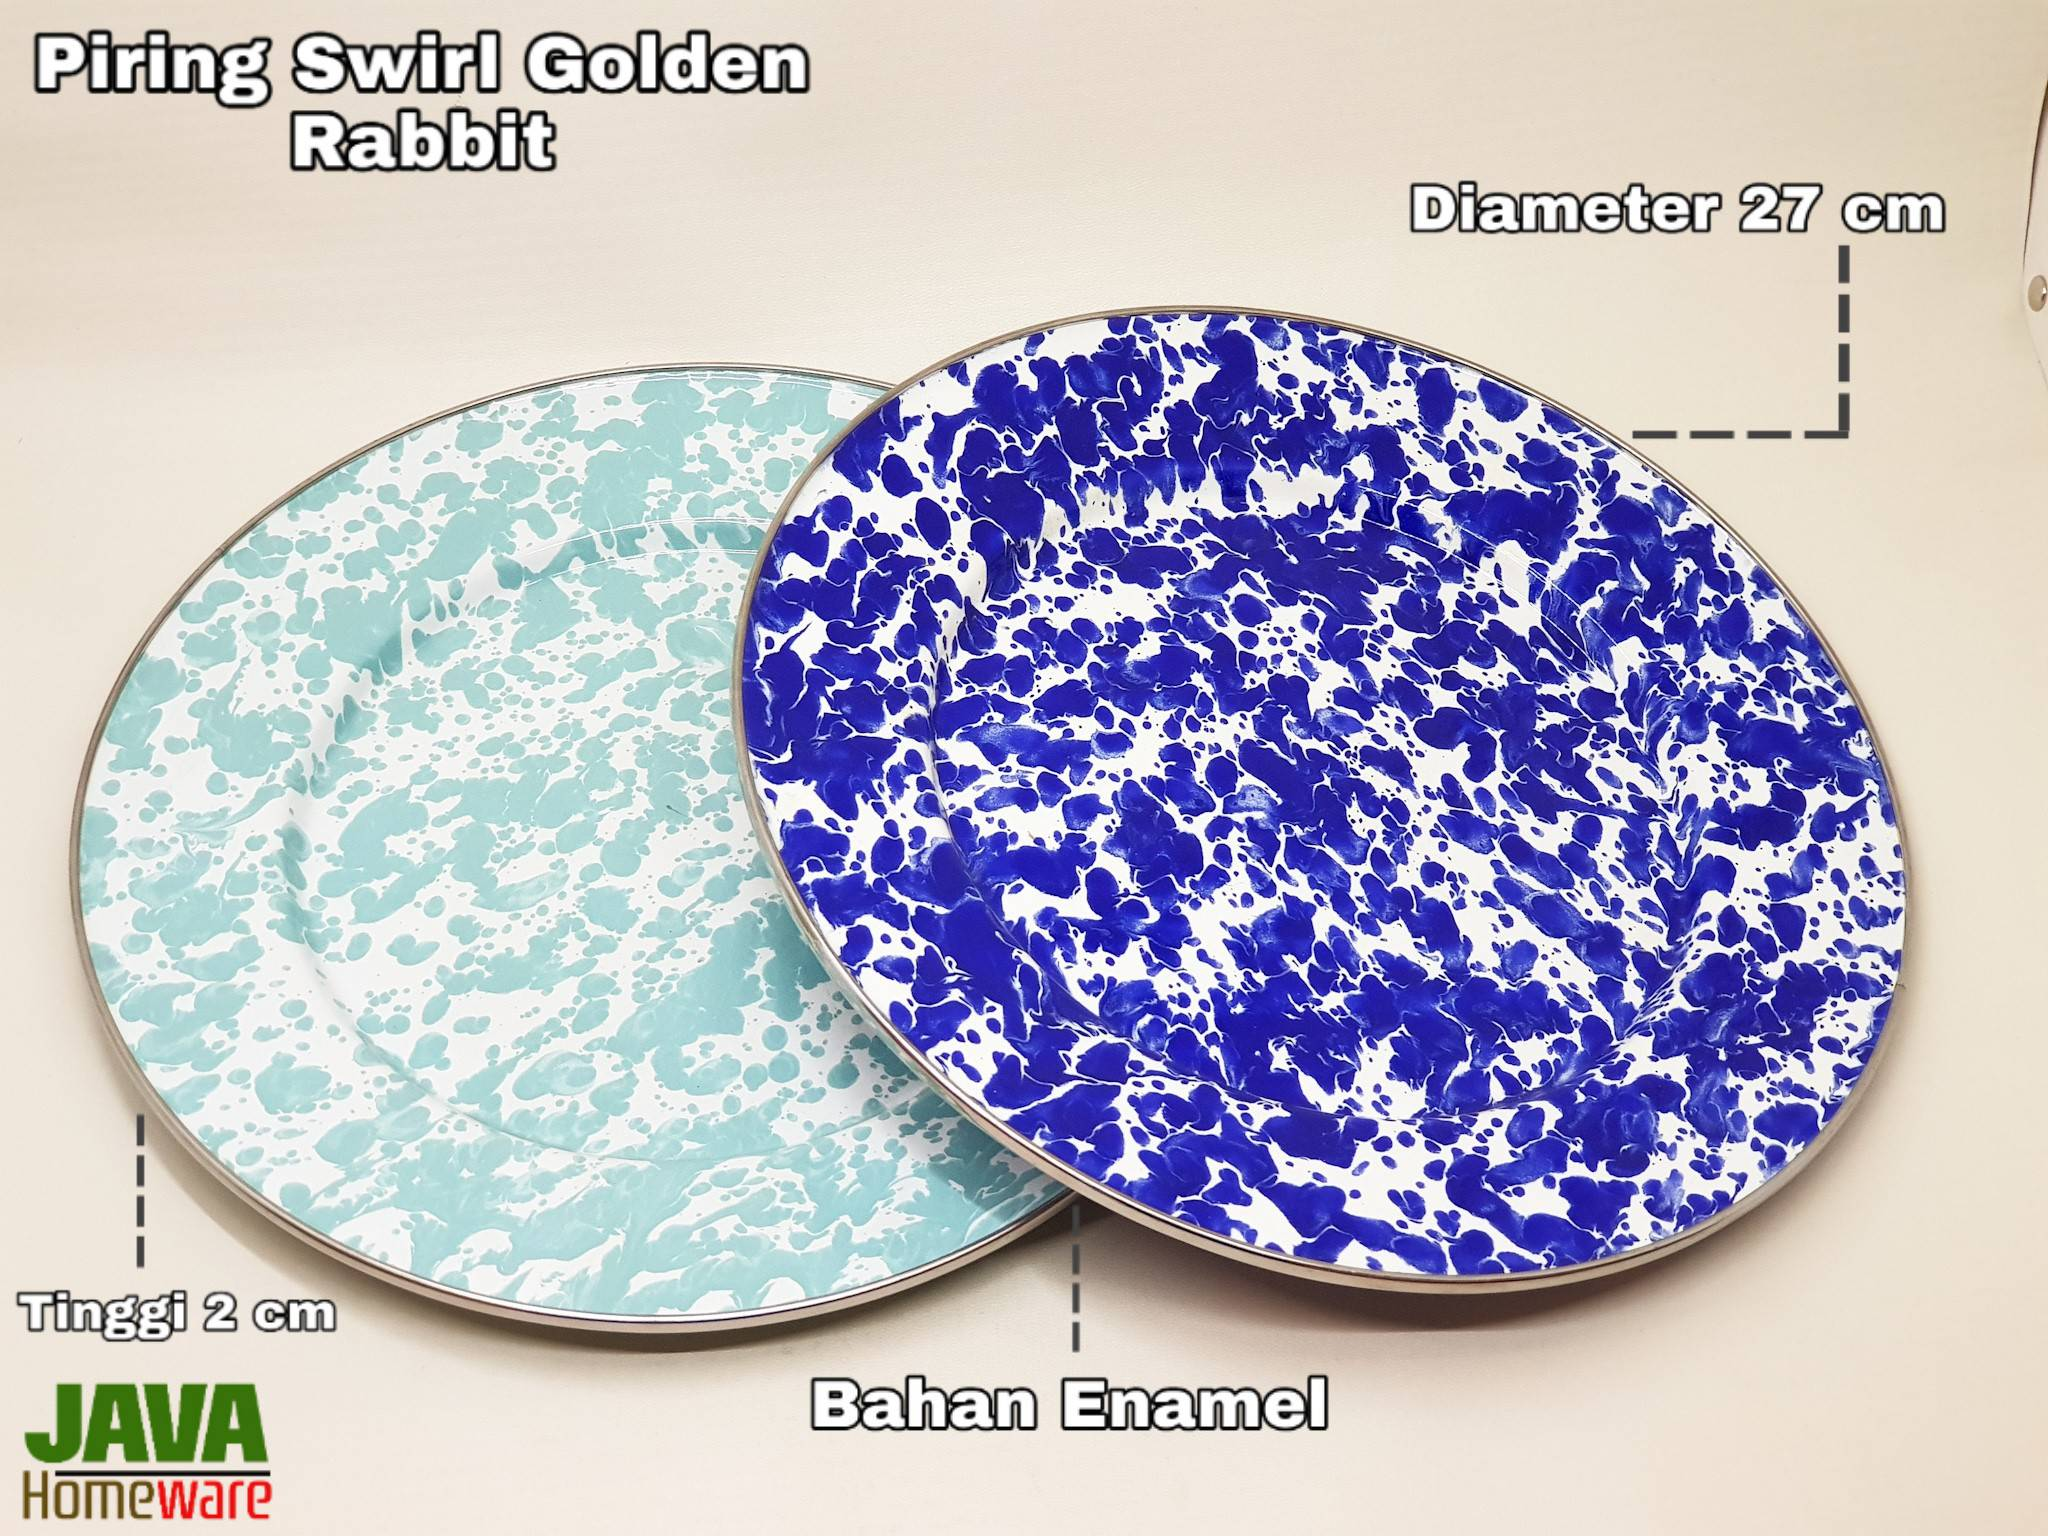 Piring Biru Swirl Golden Rabbit